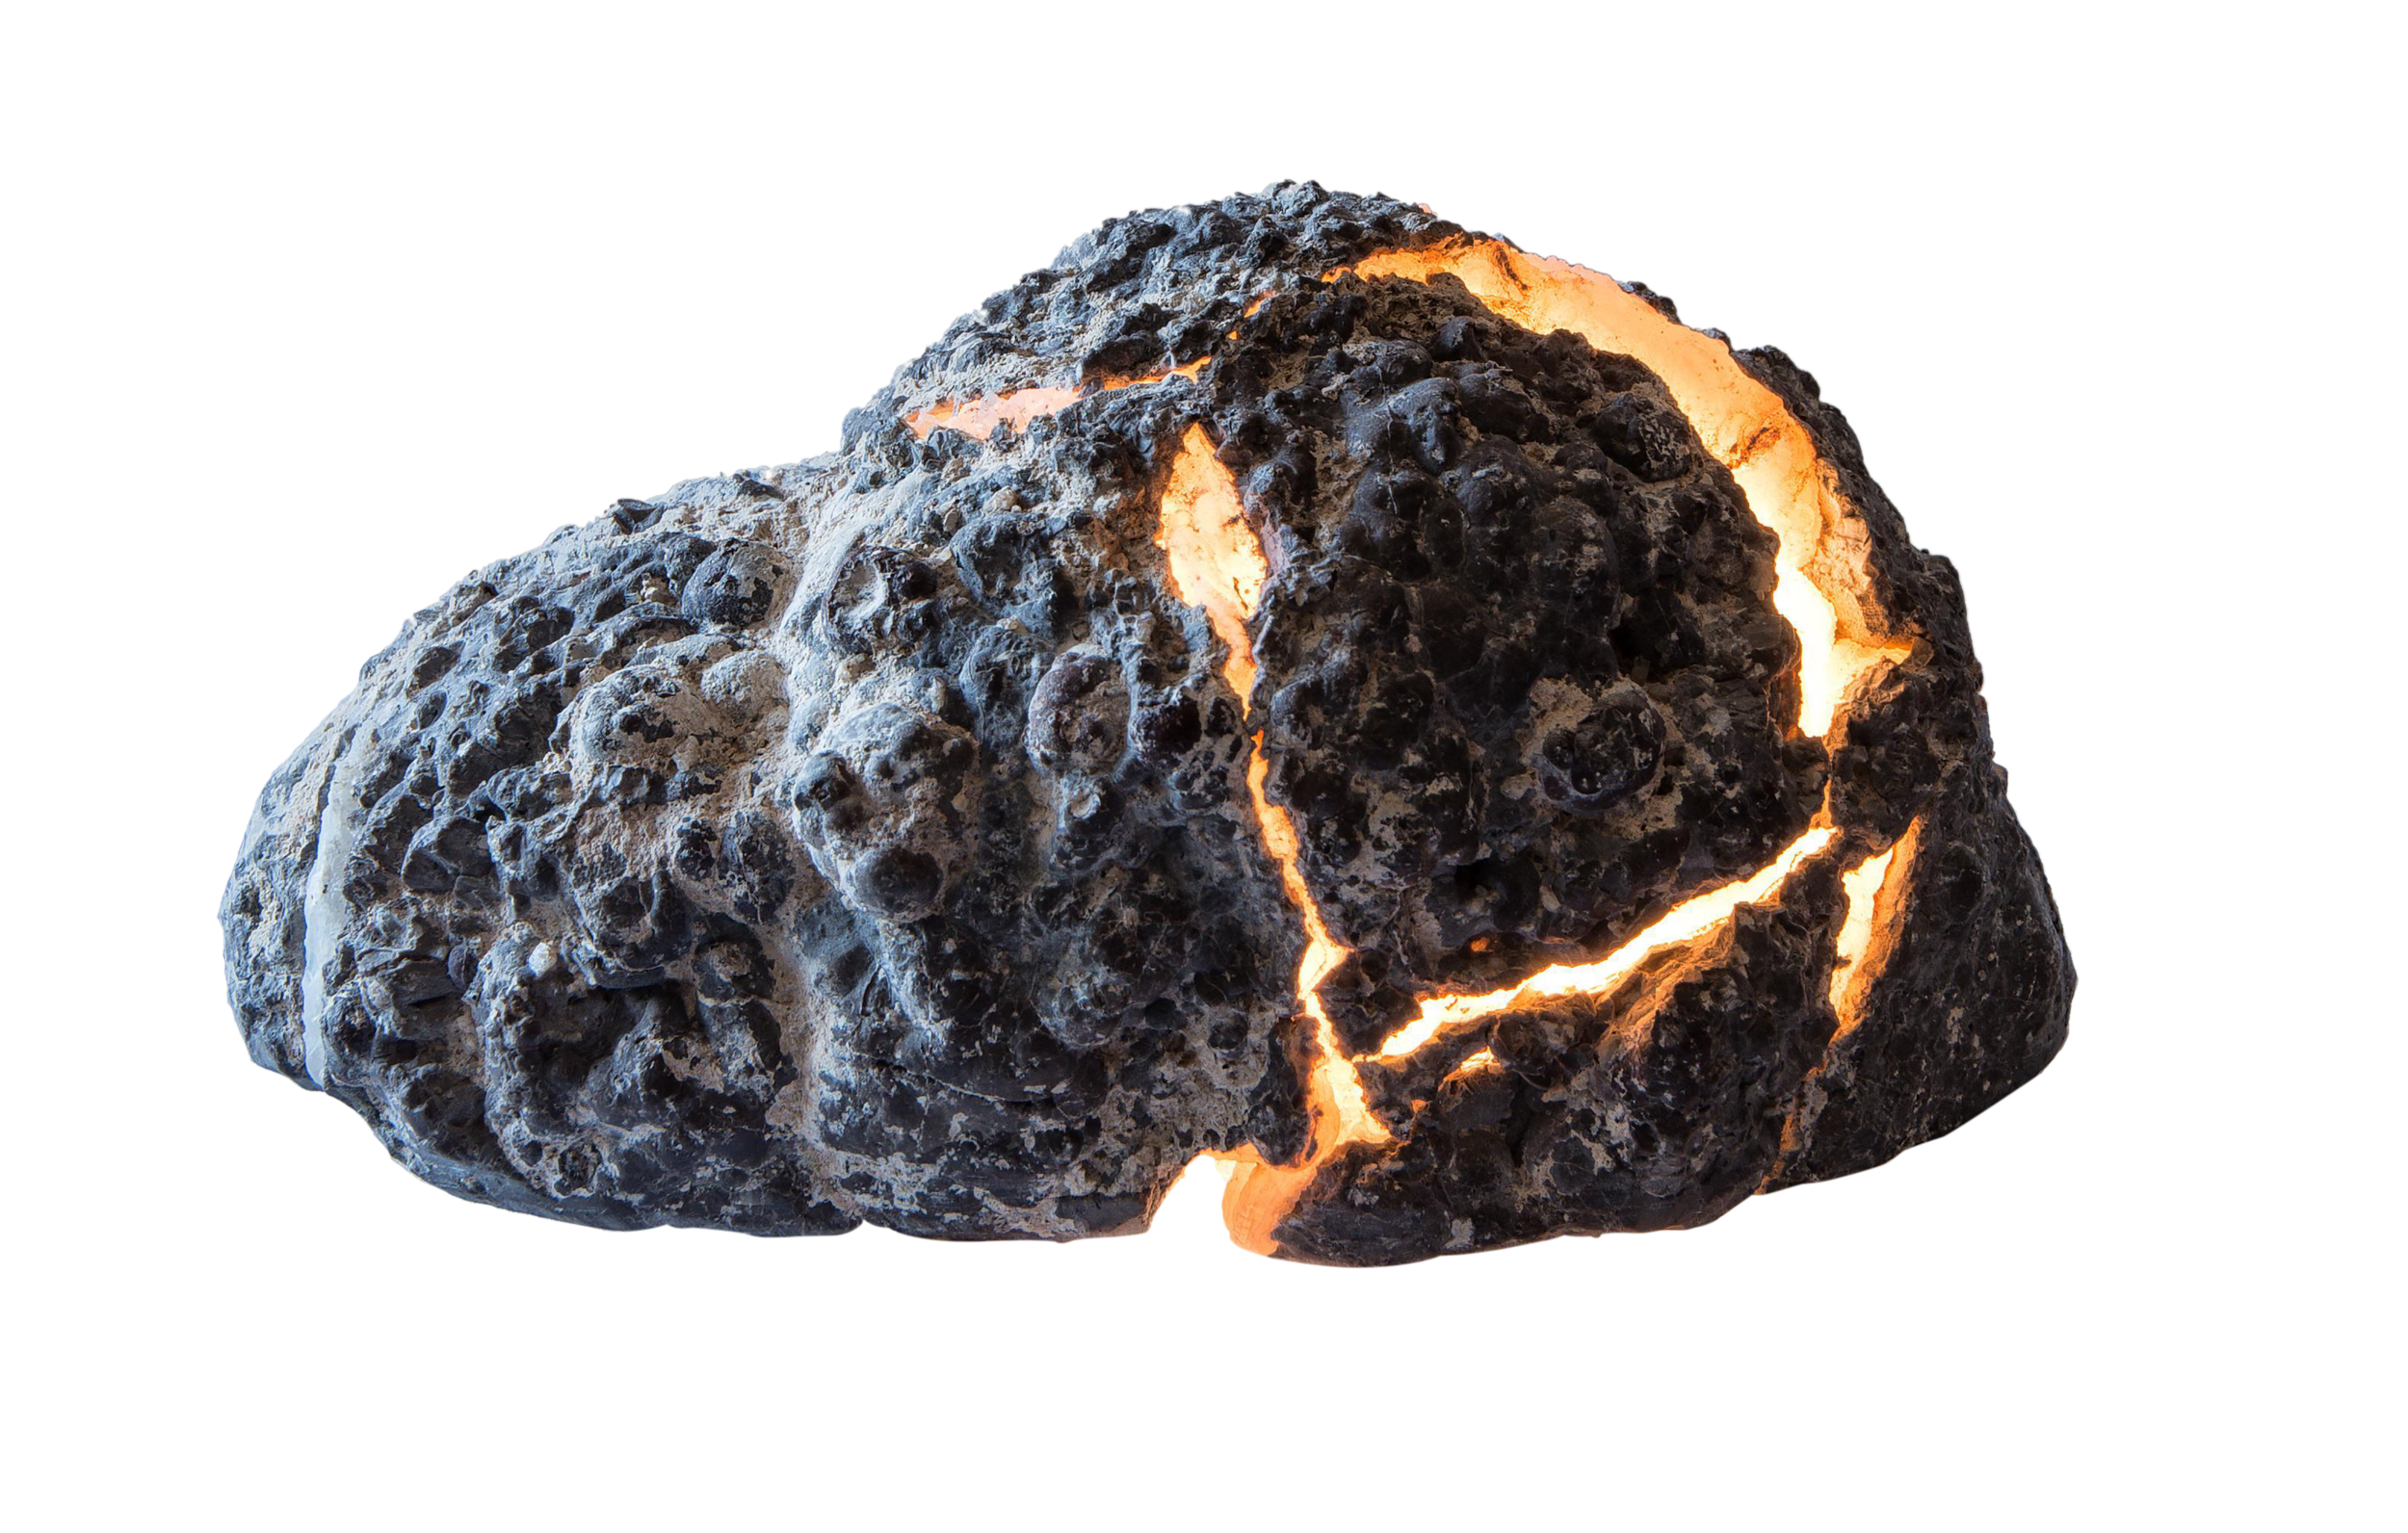 lava-rock-lamp-5657.png